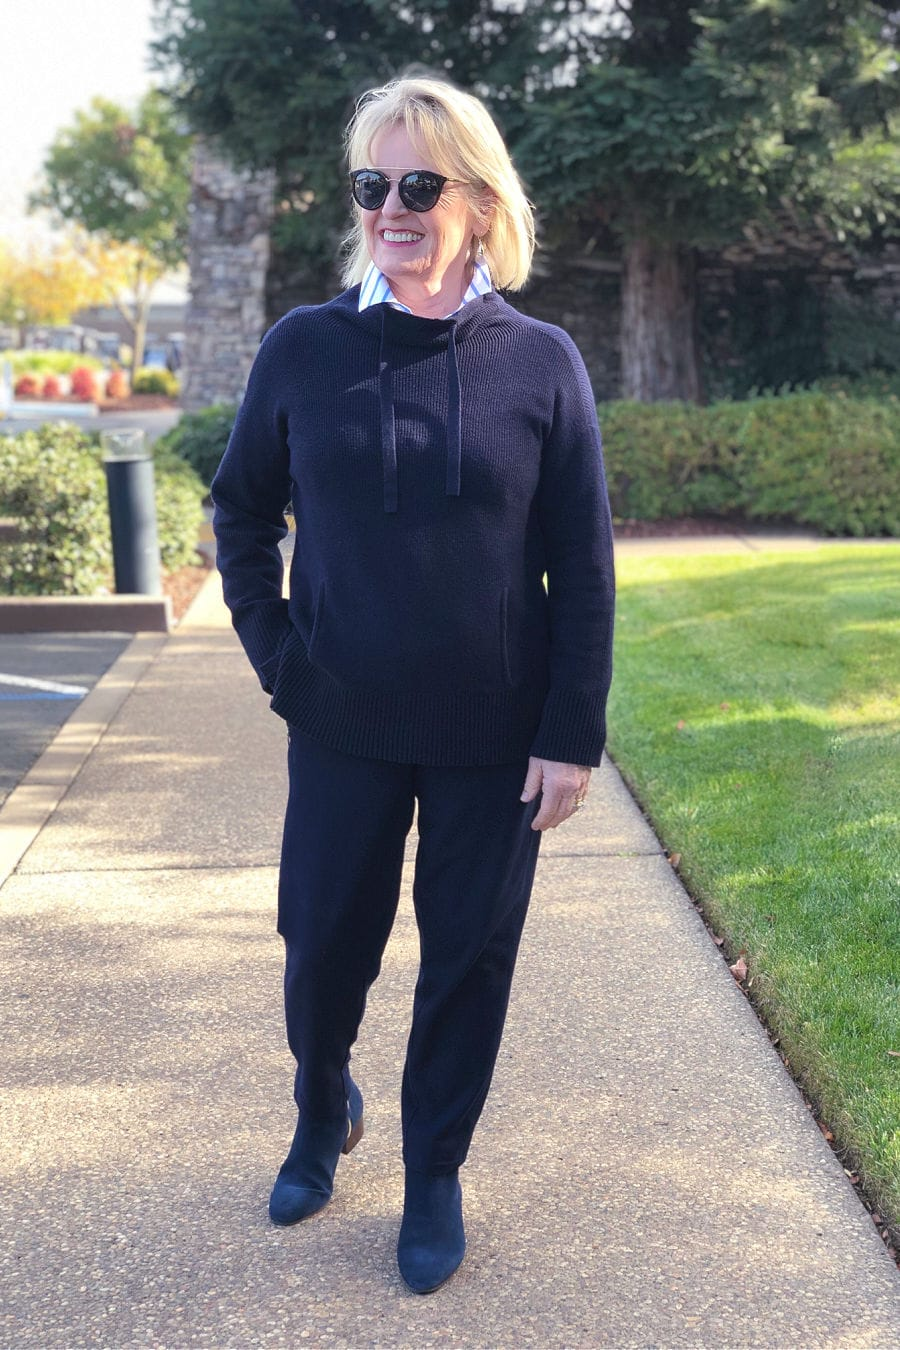 over 50 fashion blogger jennifer connolly wearing navy talbots sweater, pants and boots